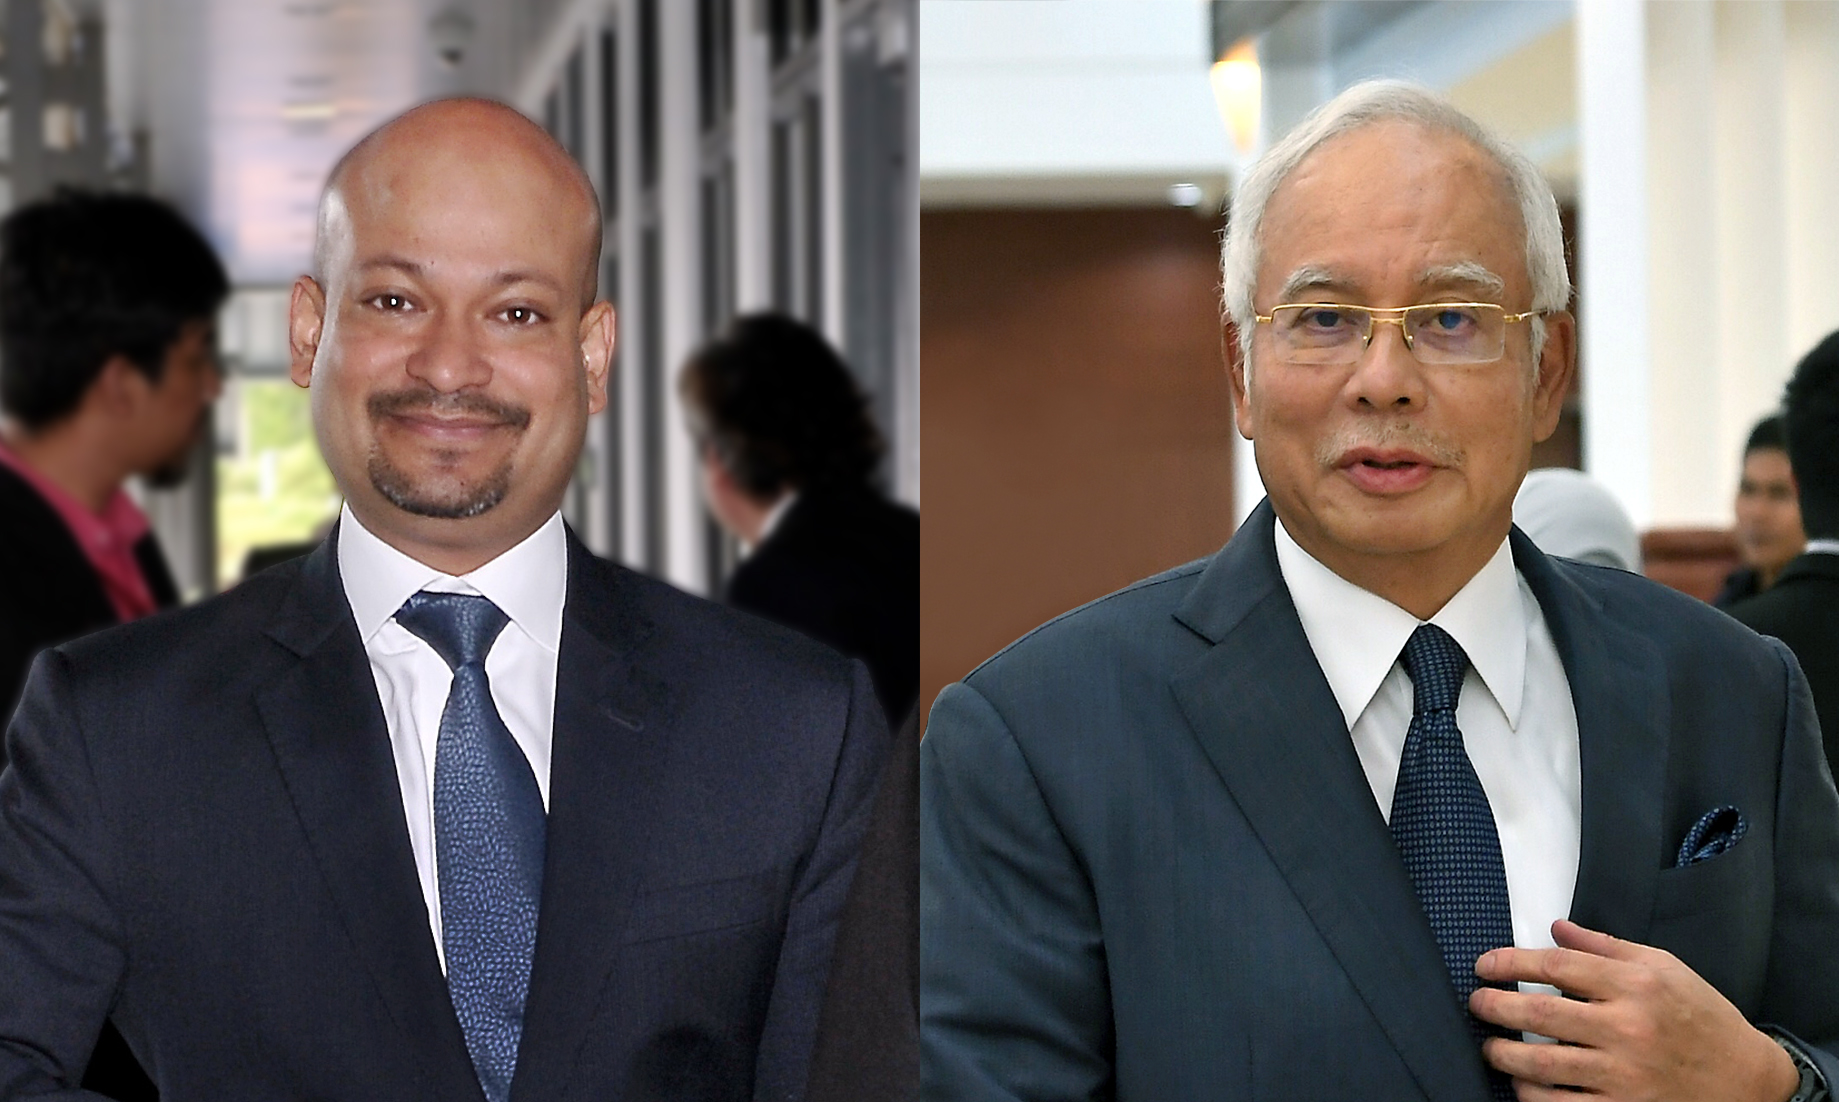 1MDB audit report trial: Prosecution says it will prove Najib tampered with audit report